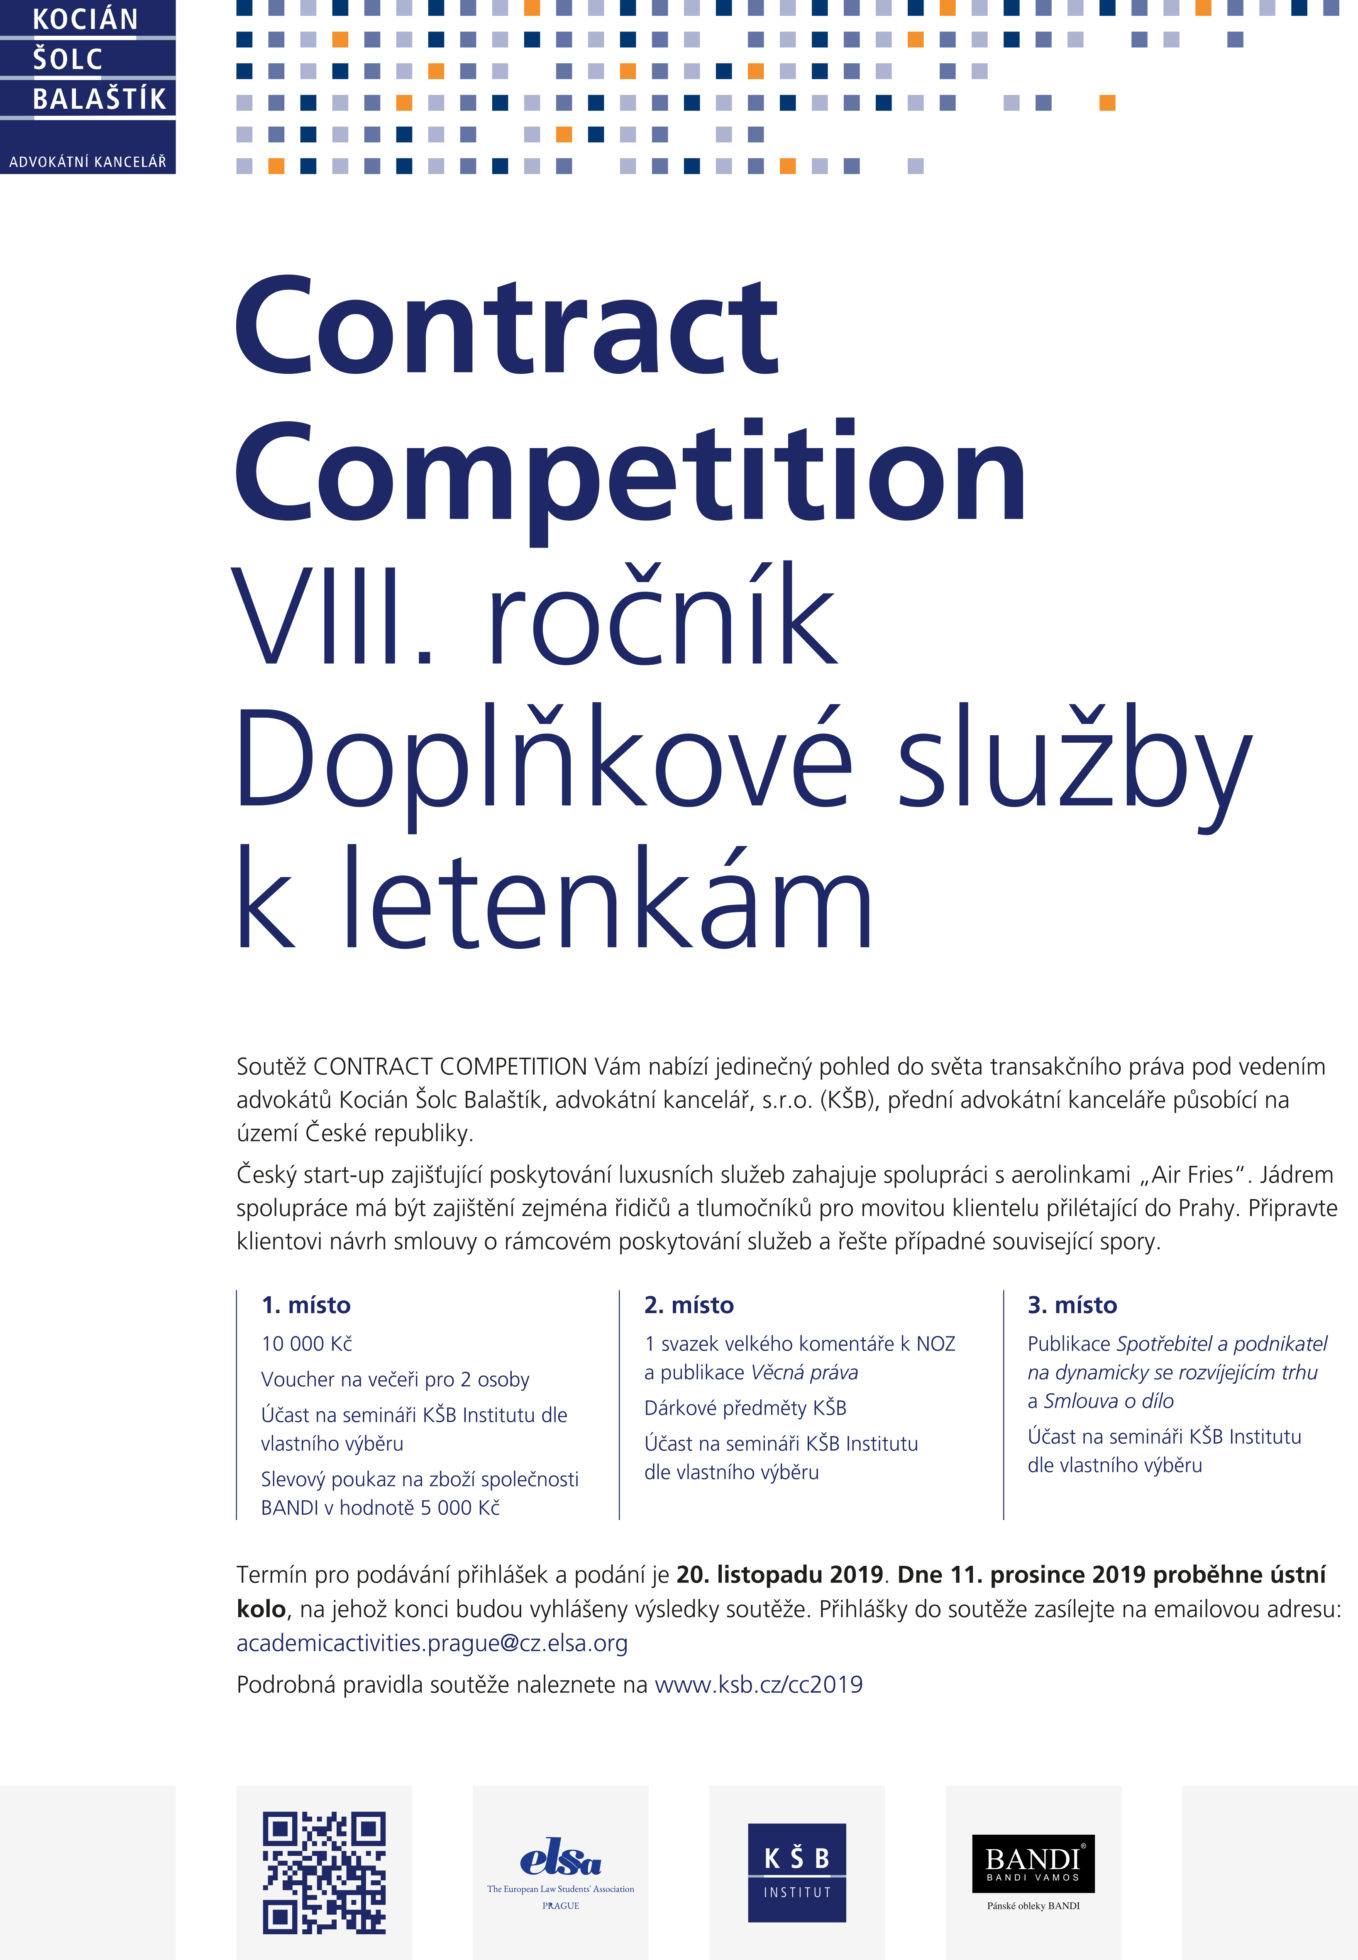 Contract Competition 2019